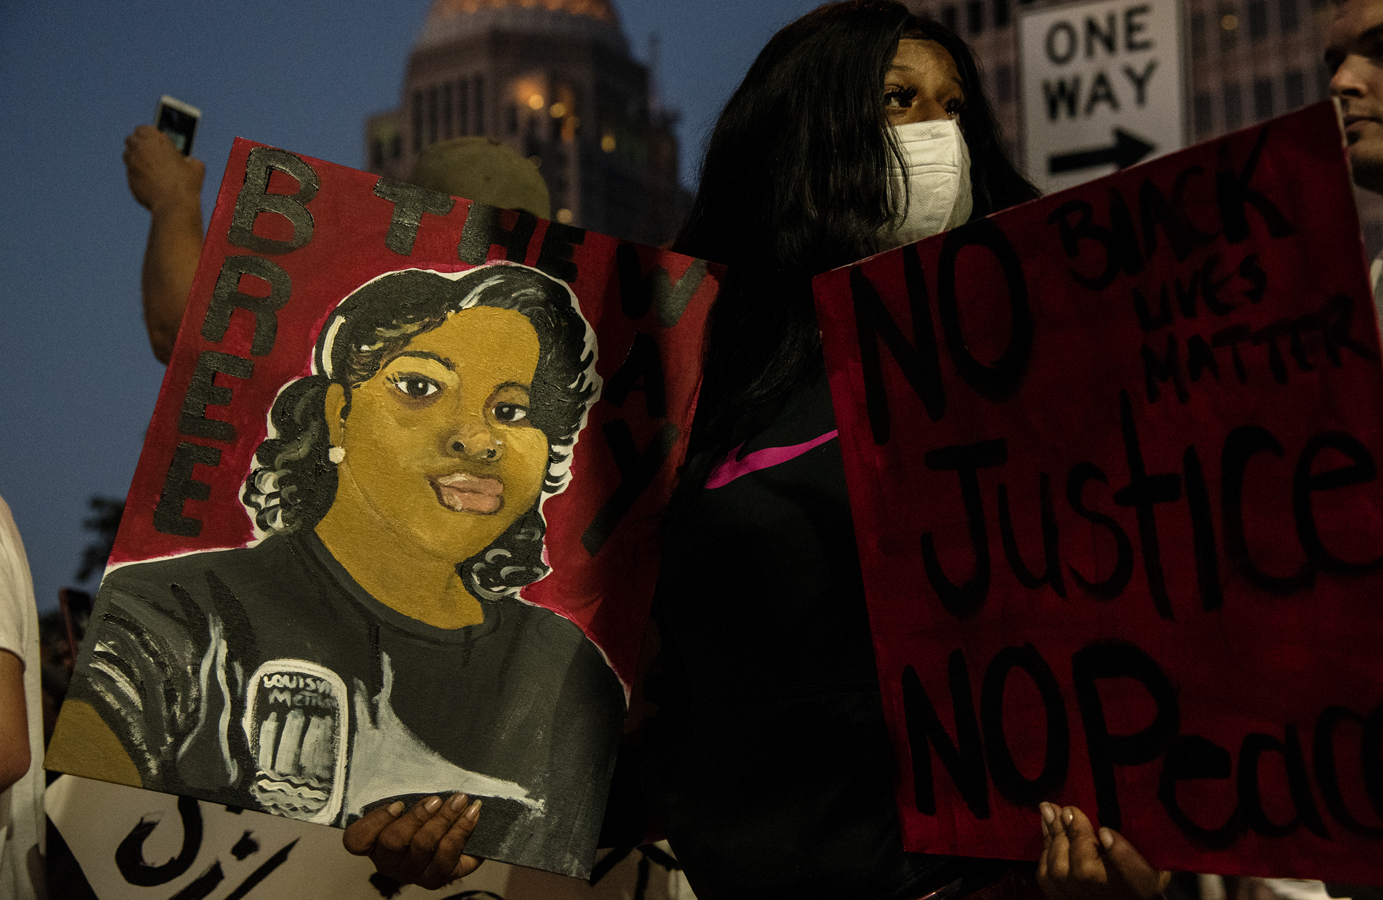 """Protestors gathered for a second night in downtown Louisville on the evening of May 29. The protests were spurred by the death of Breonna Taylor at the hands of police, and lasted into the night and early morning. Phrases such as """"no justice, no peace"""" were shouted by crowd members. Vandals broke windows of buildings, police cars, and spray painted on walls across downtown. The police used tear gas and rubber bullets on protestors. Further protests are planned for the evening of Saturday, May 30."""